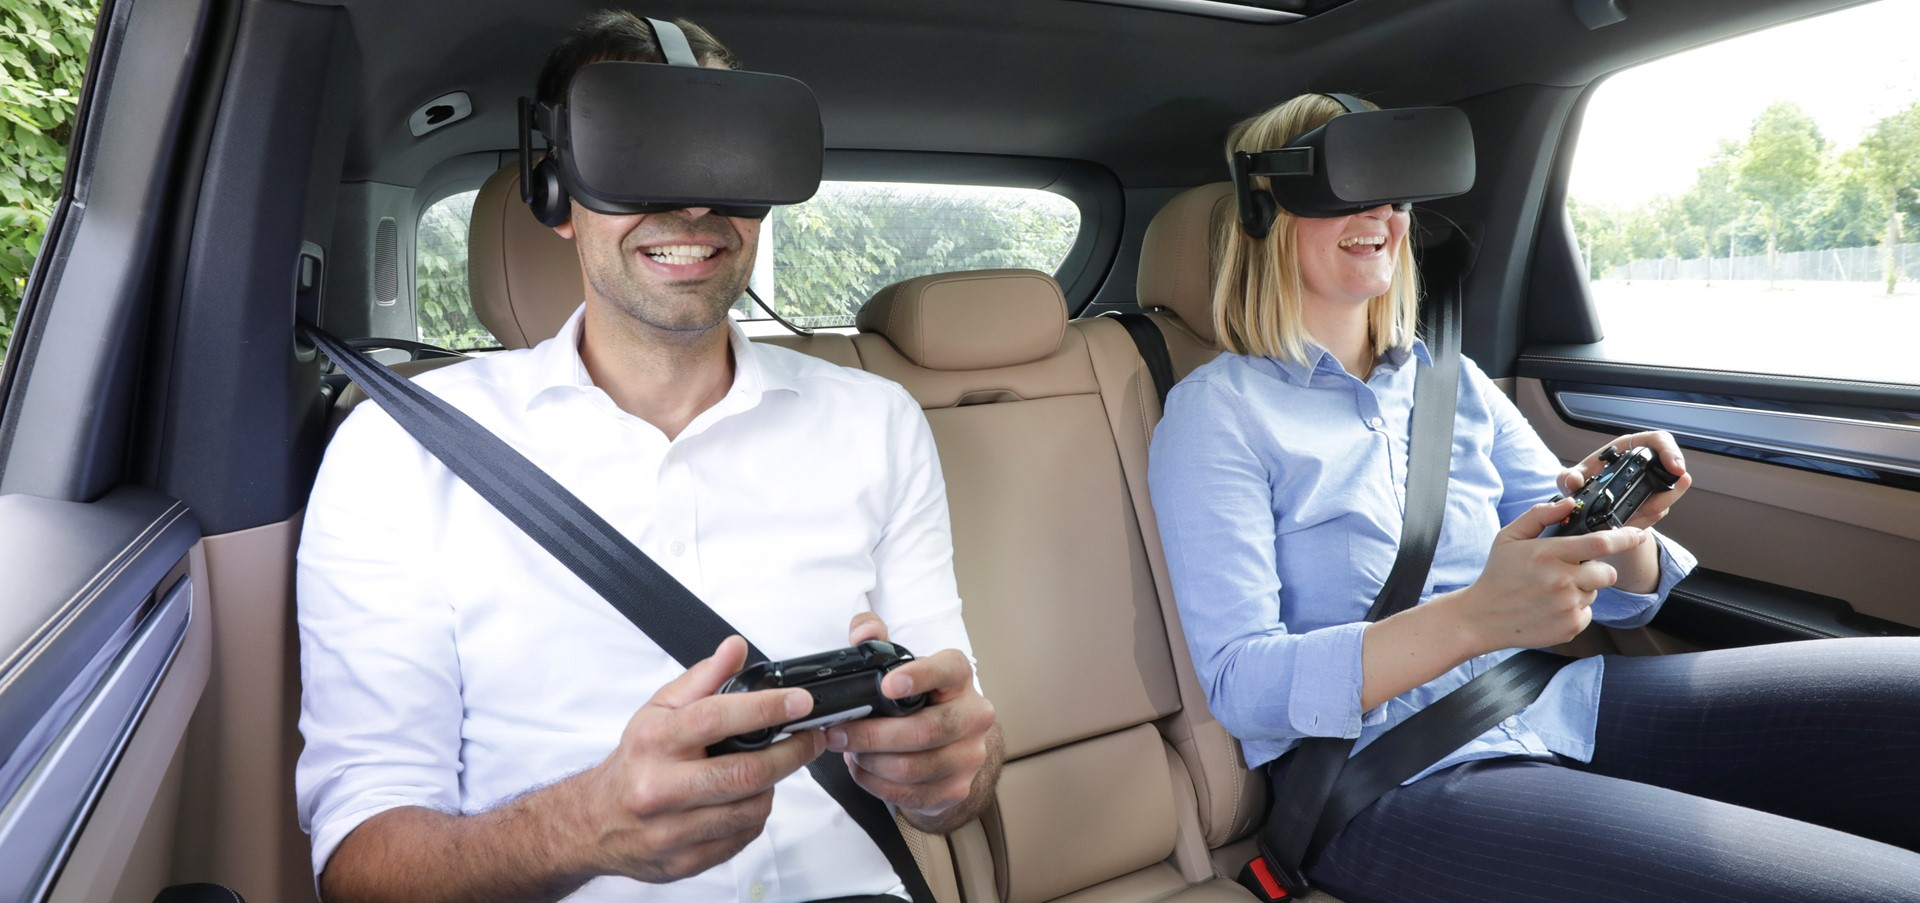 Porsche presents VR entertainment for the back seat